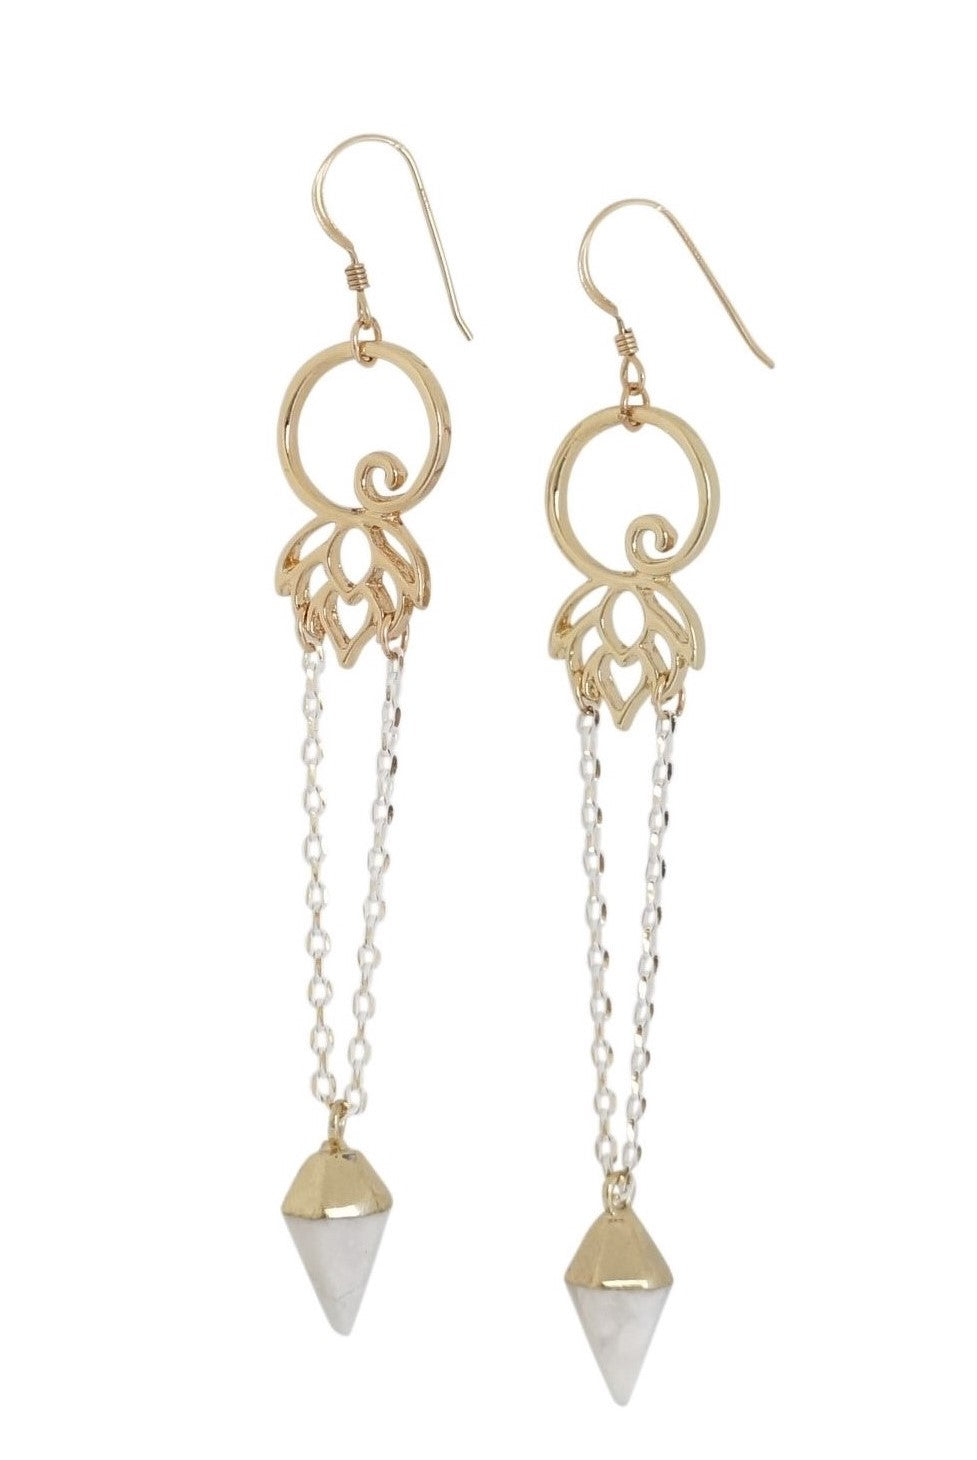 Intuition Earrings - Carolyn Hearn Designs